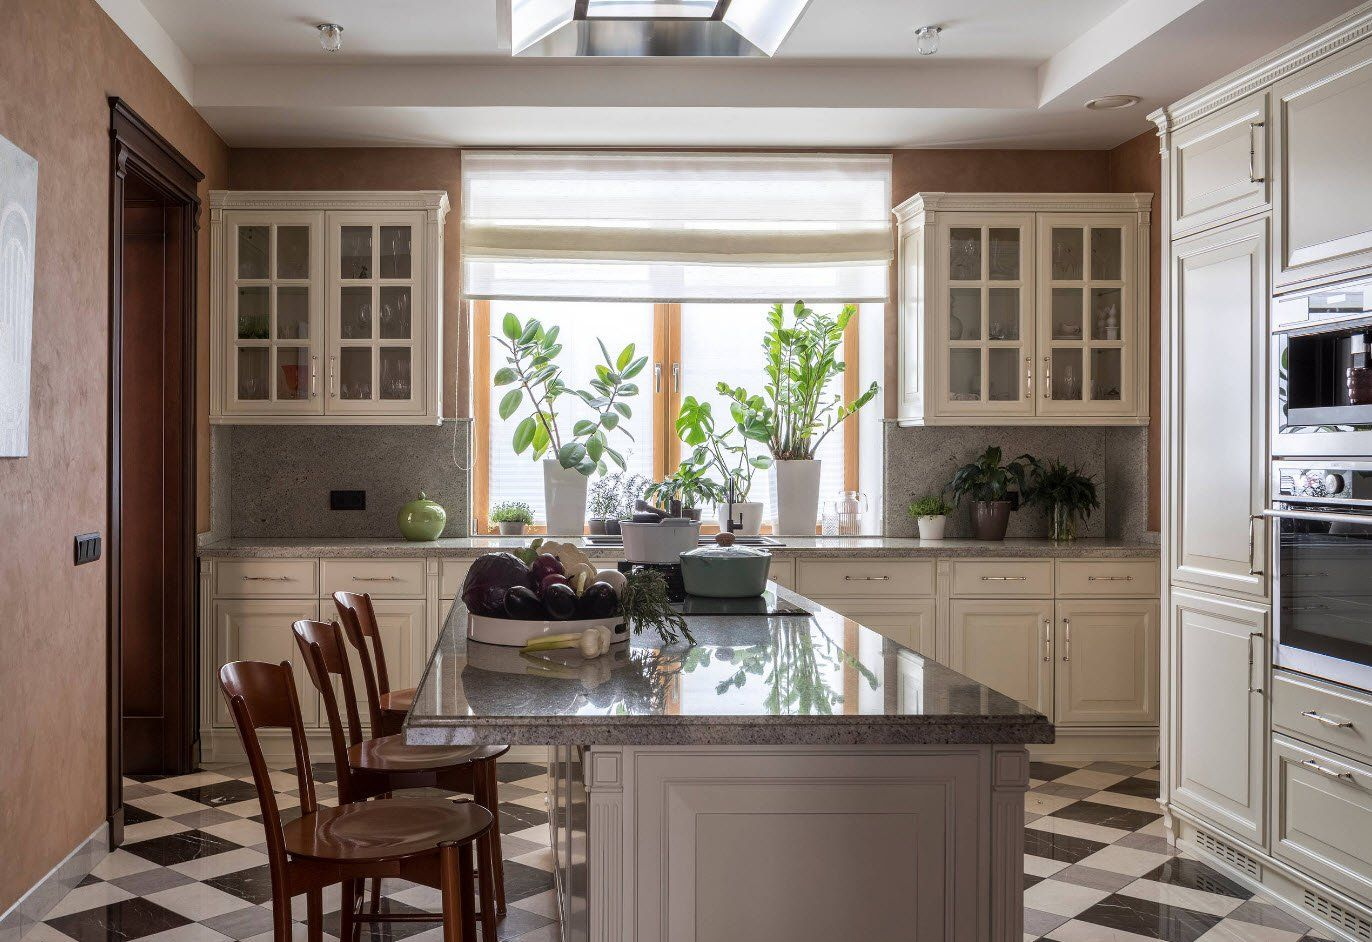 Sash window of the kitchen cabinets in Classic kitchen